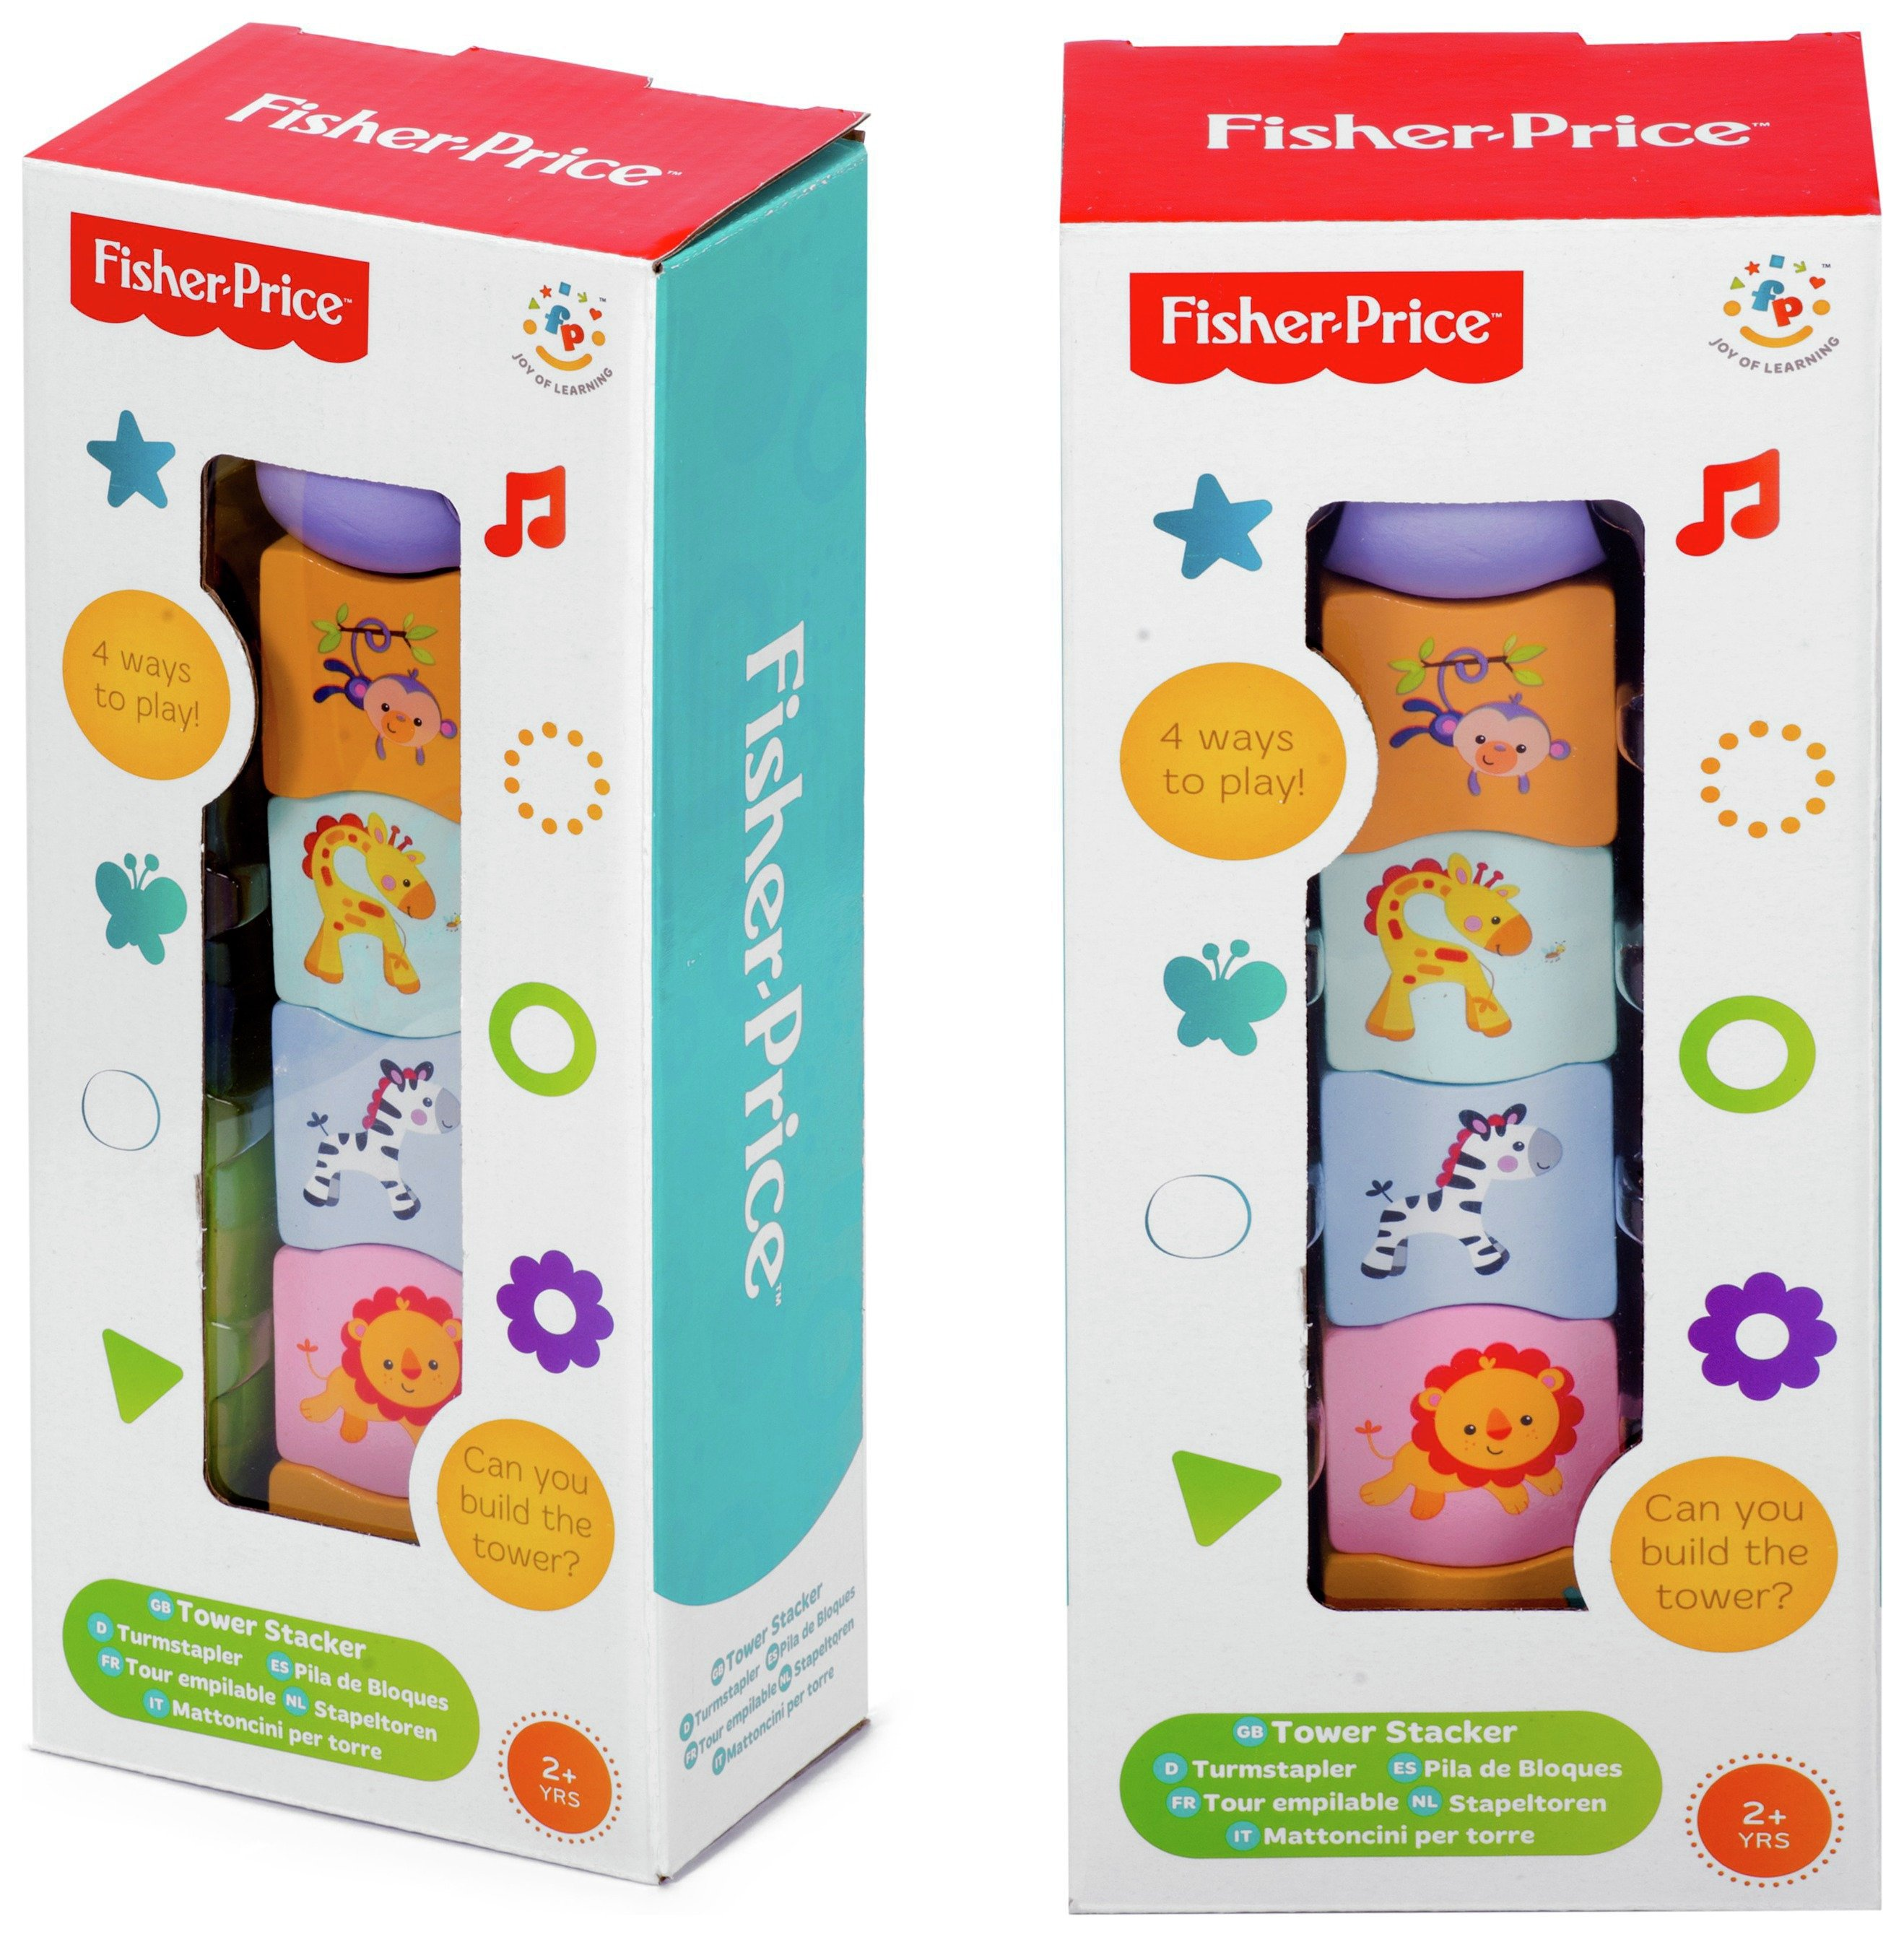 Image of Fisher-Price Stacking Tower.